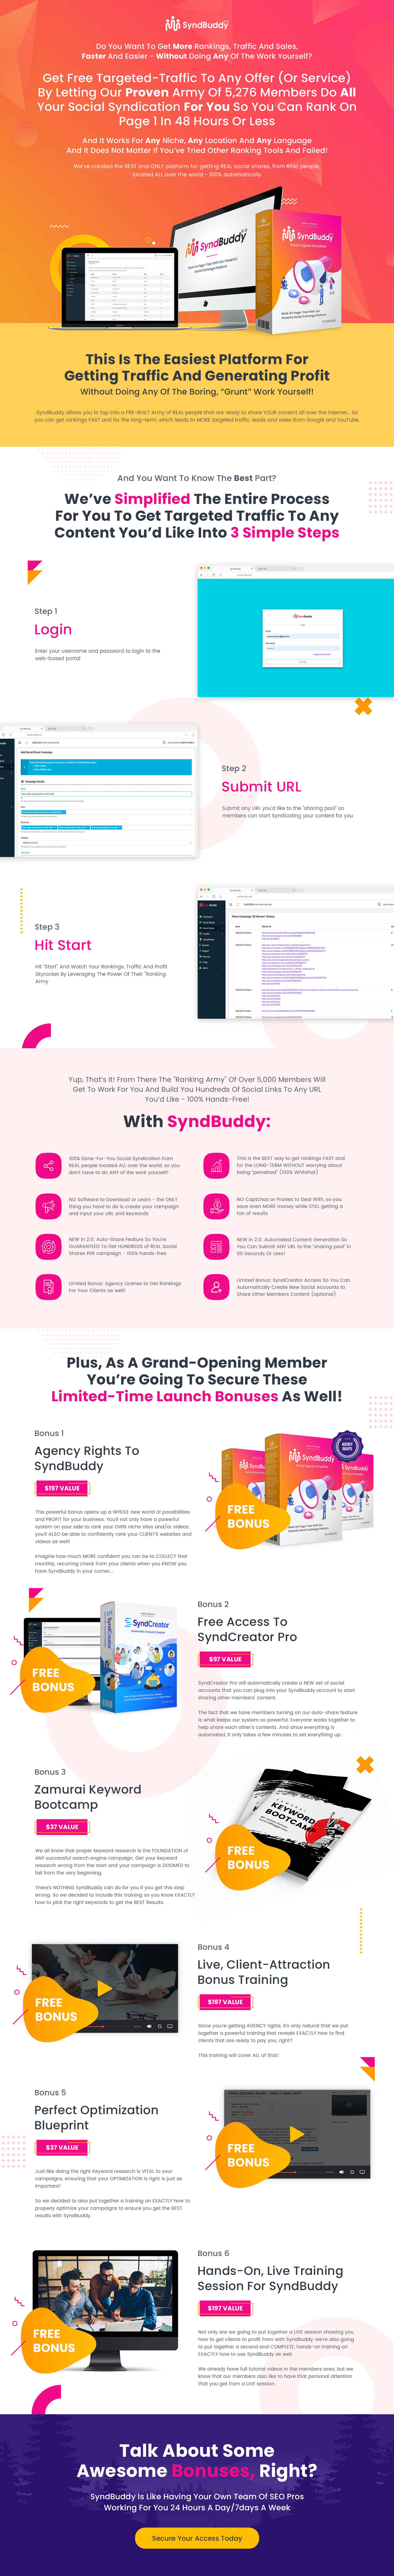 SyndBuddy 2.0 Review